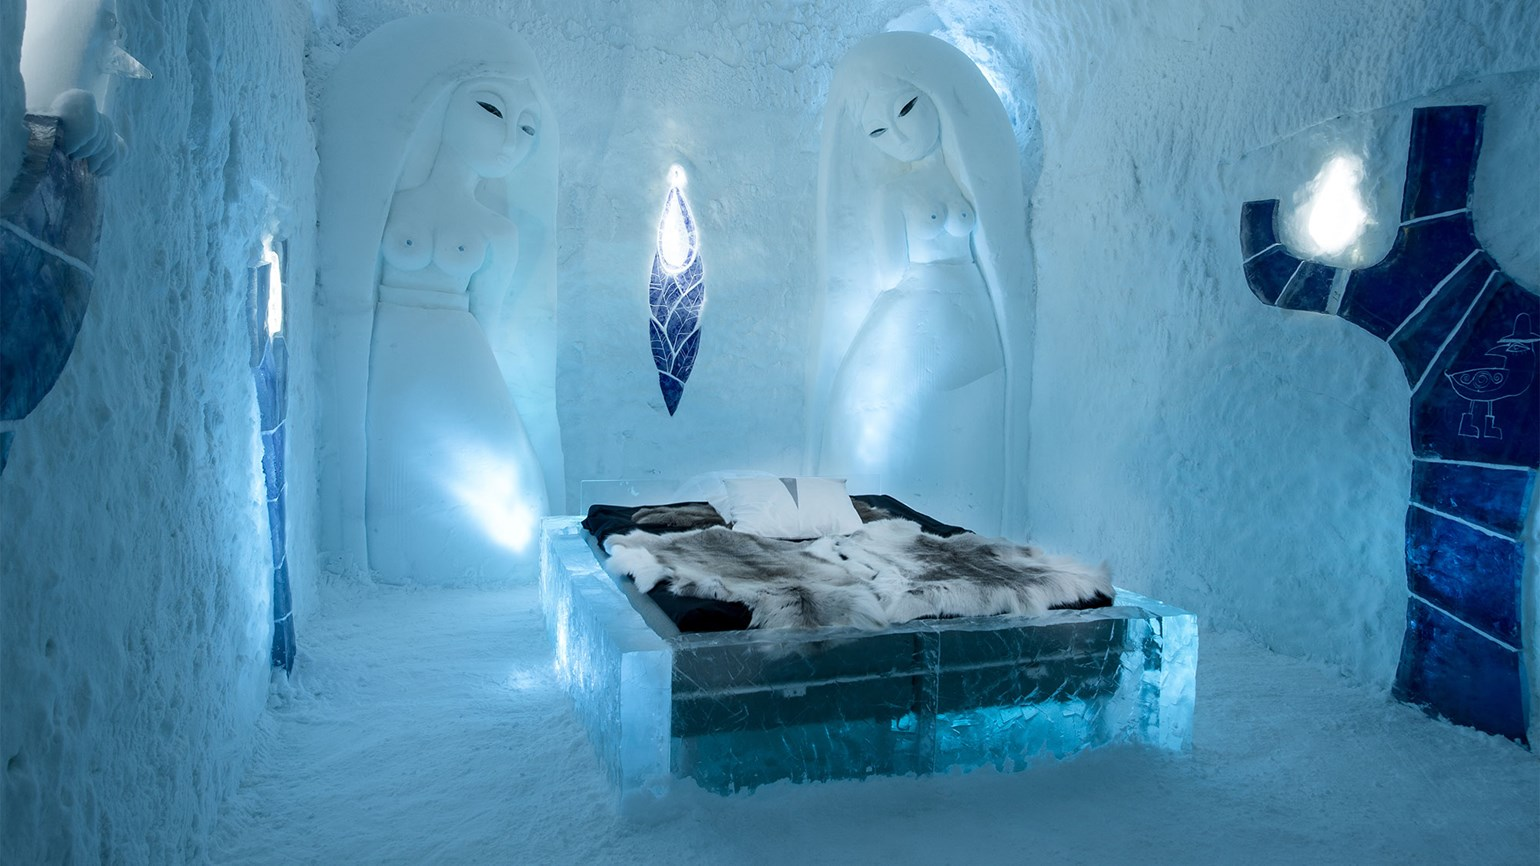 Temporary exhibit: Sweden's Icehotel opens